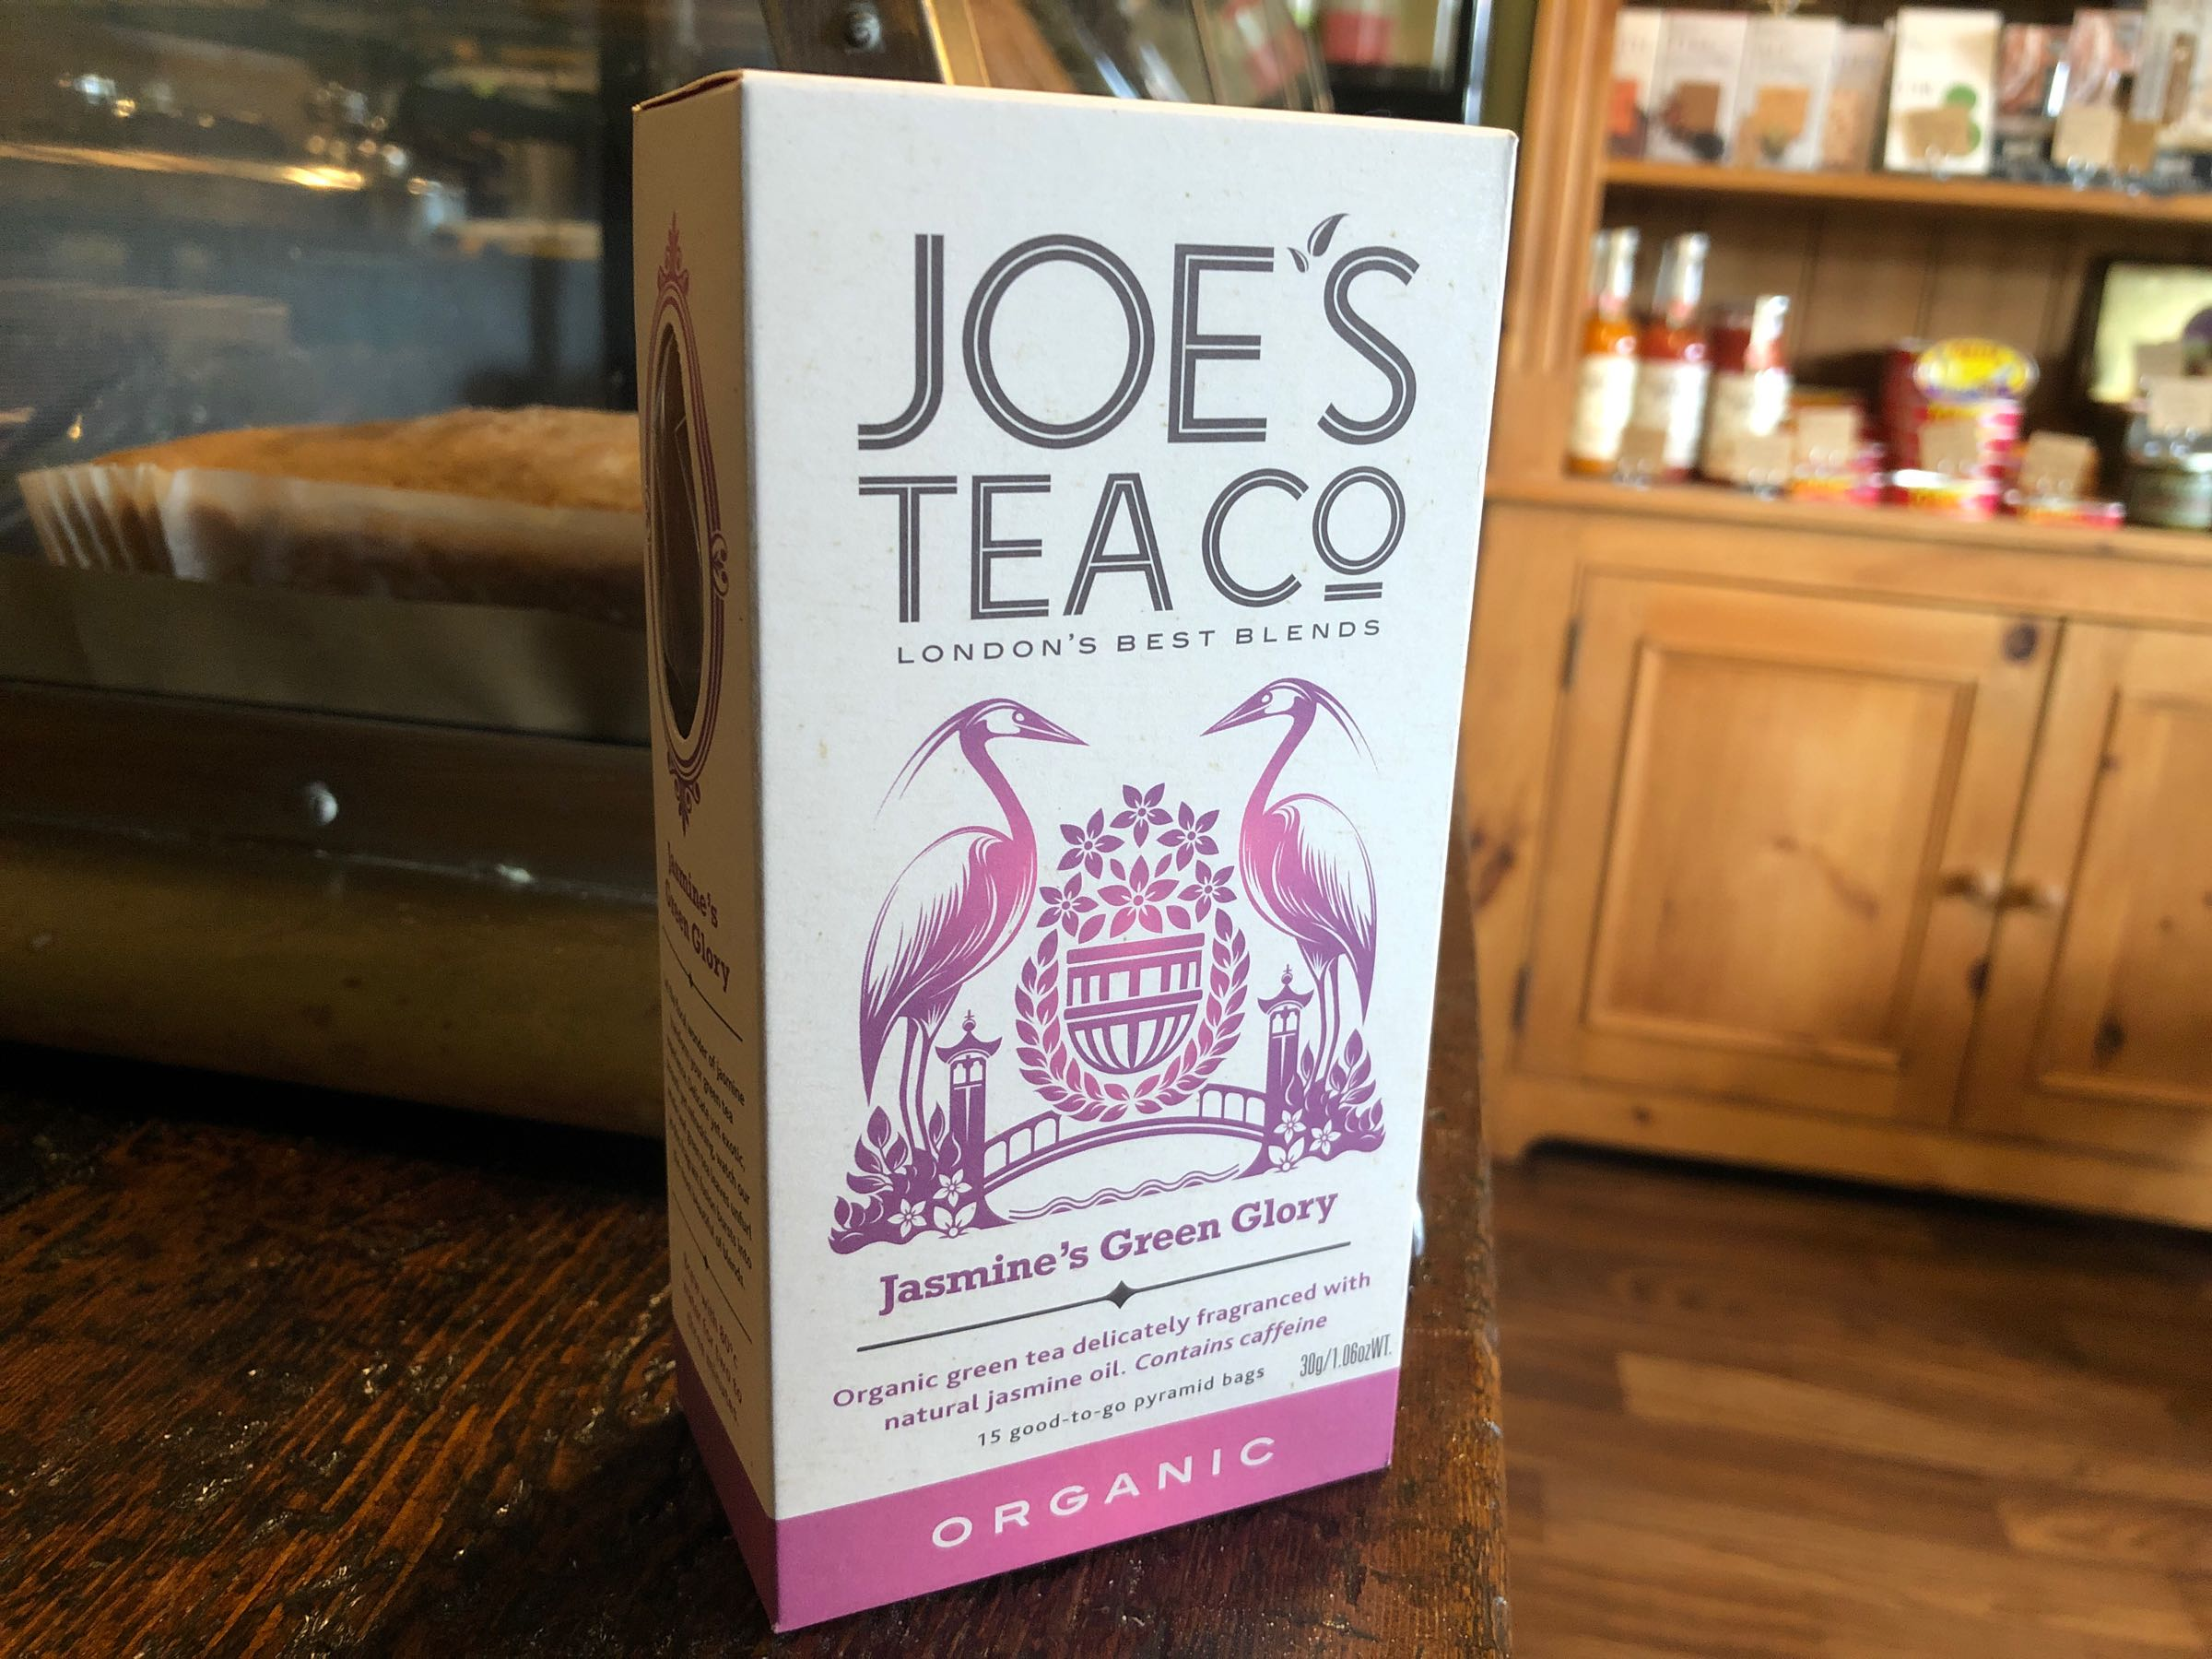 Joe's Tea Co. Jasmine's Green Glory - Organic